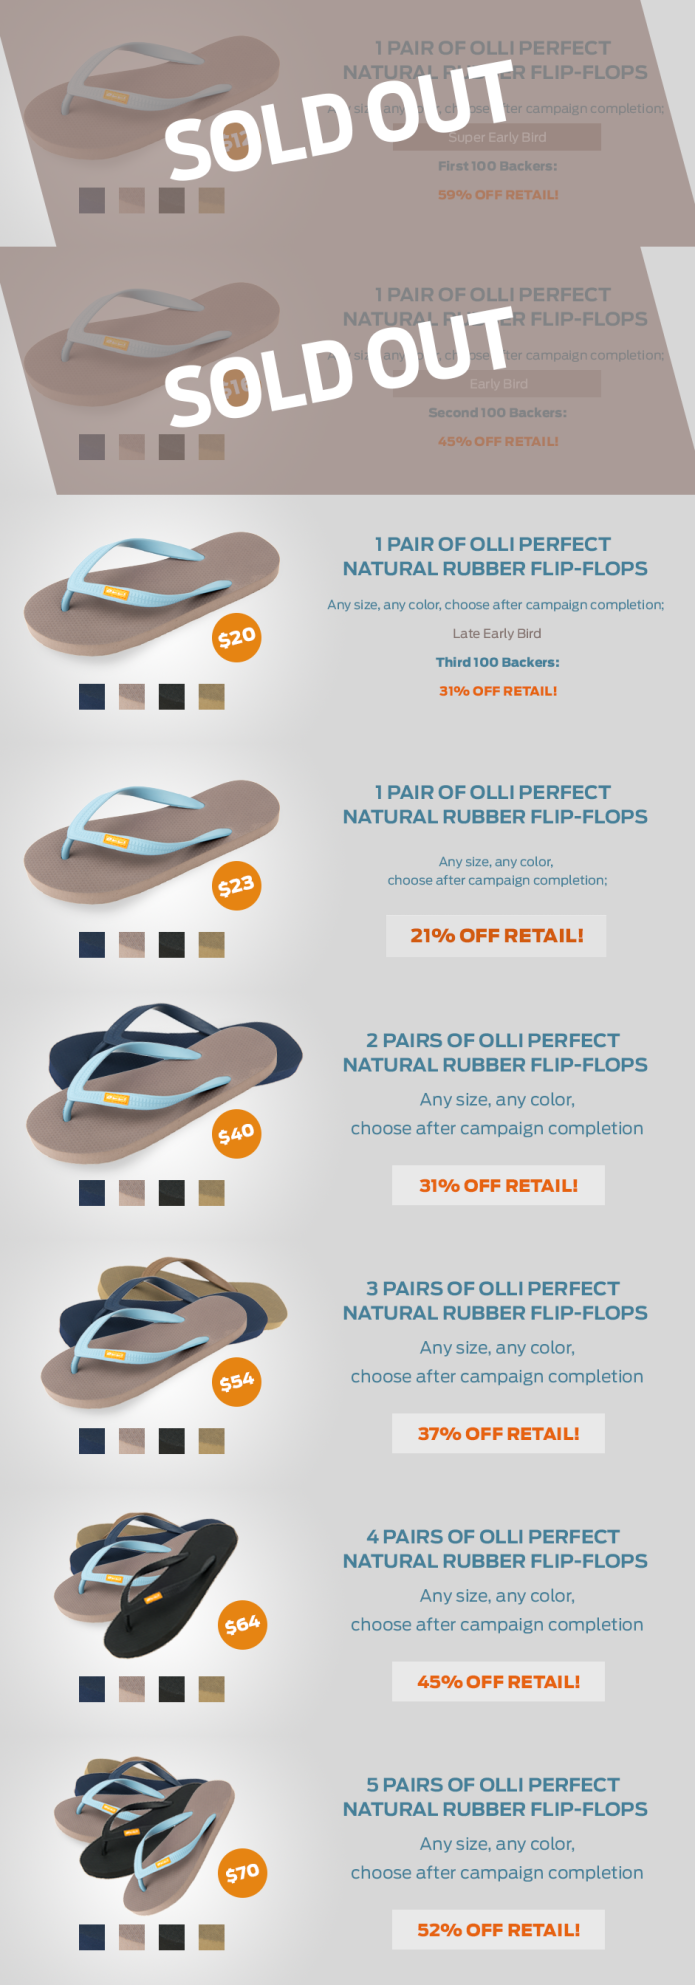 138d25ffa5c6 Get your pair of Olli flip-flops while the price is special. See the reward  levels below and choose your reward on the right.